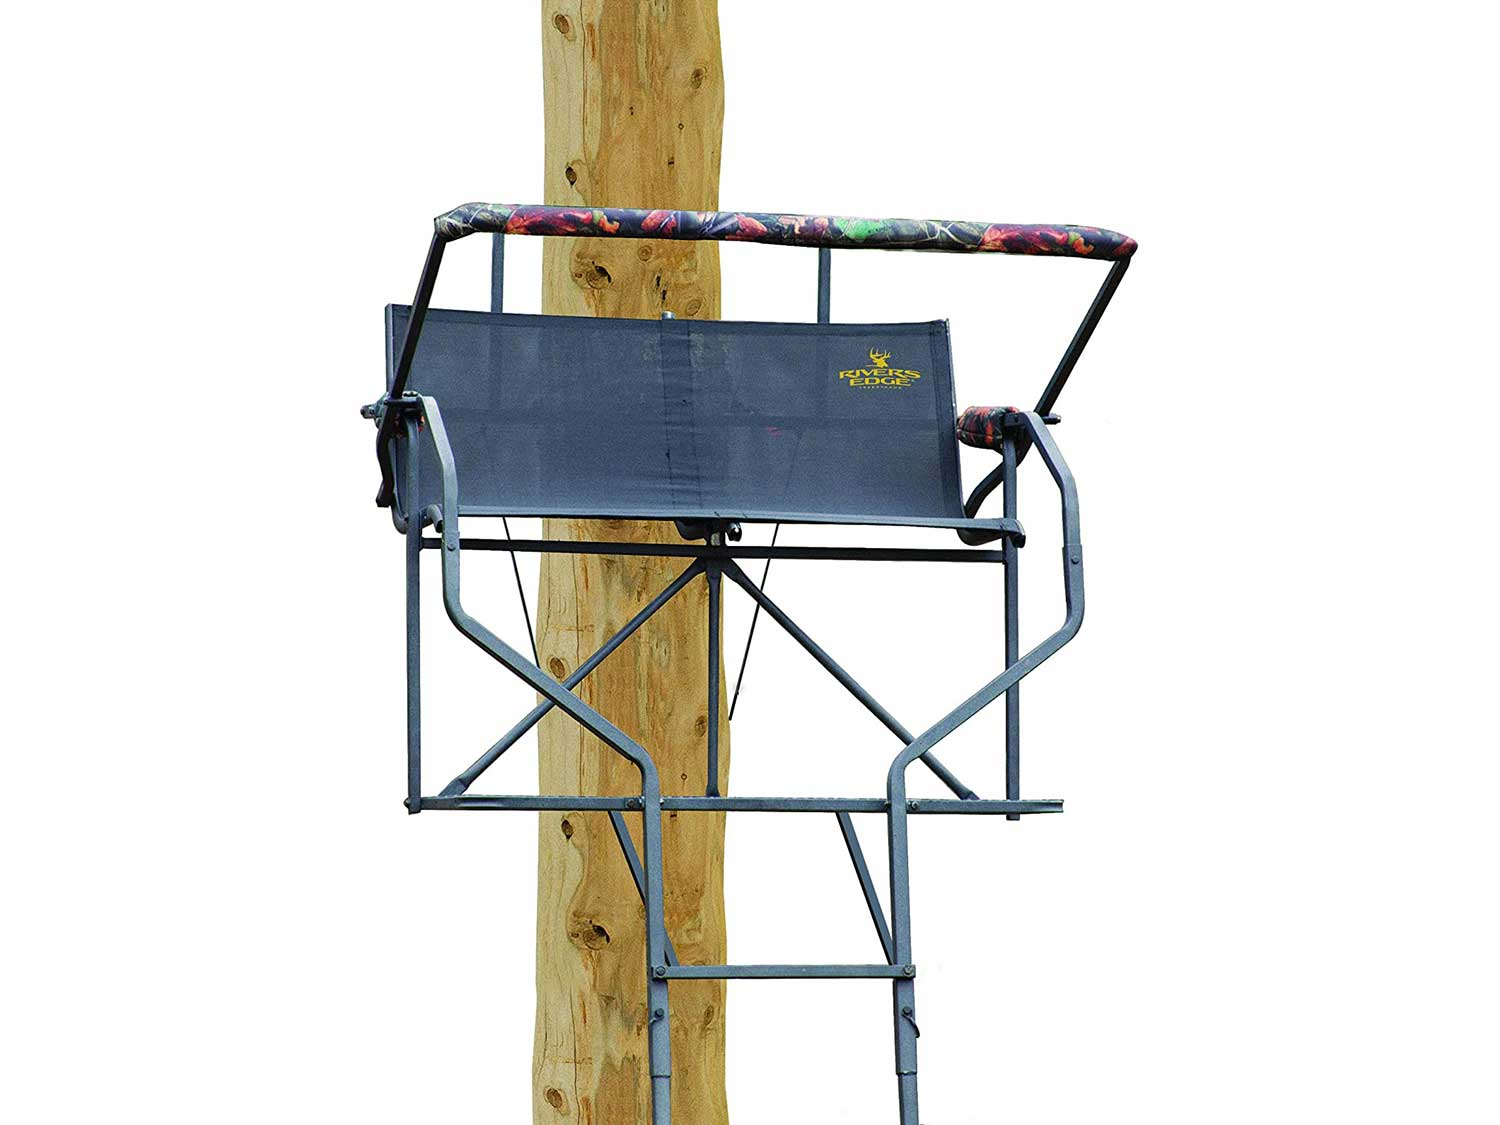 Rivers Edge RE634 Relax 2 Man Ladder Stand,Black